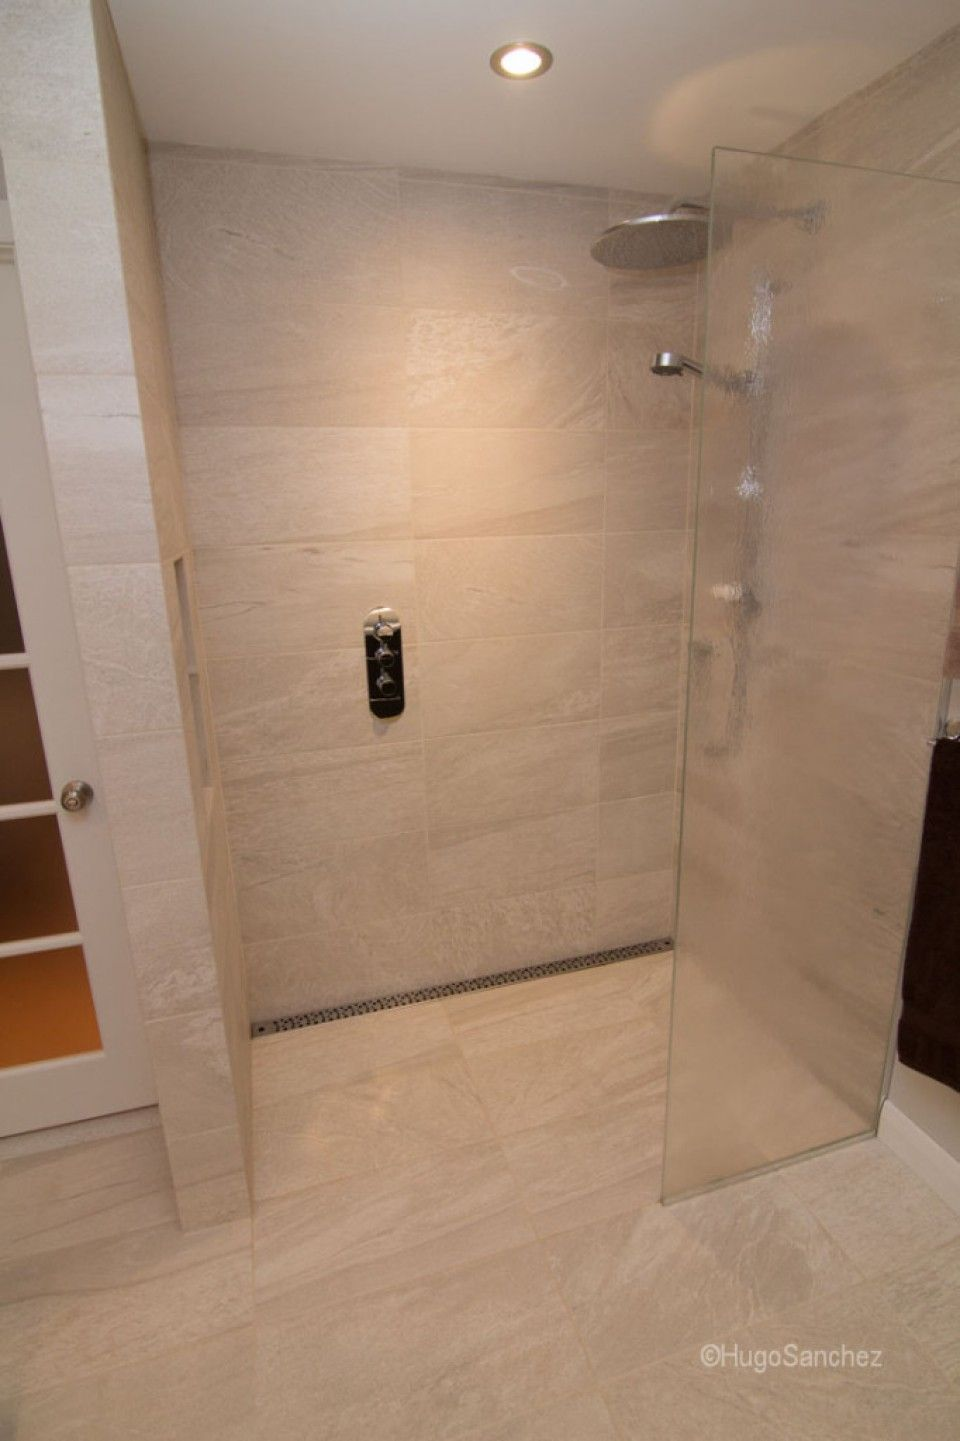 Curbless Shower Designs C Ramiques Hugo Sanchez Bathrooms With Tile Showers Pinterest